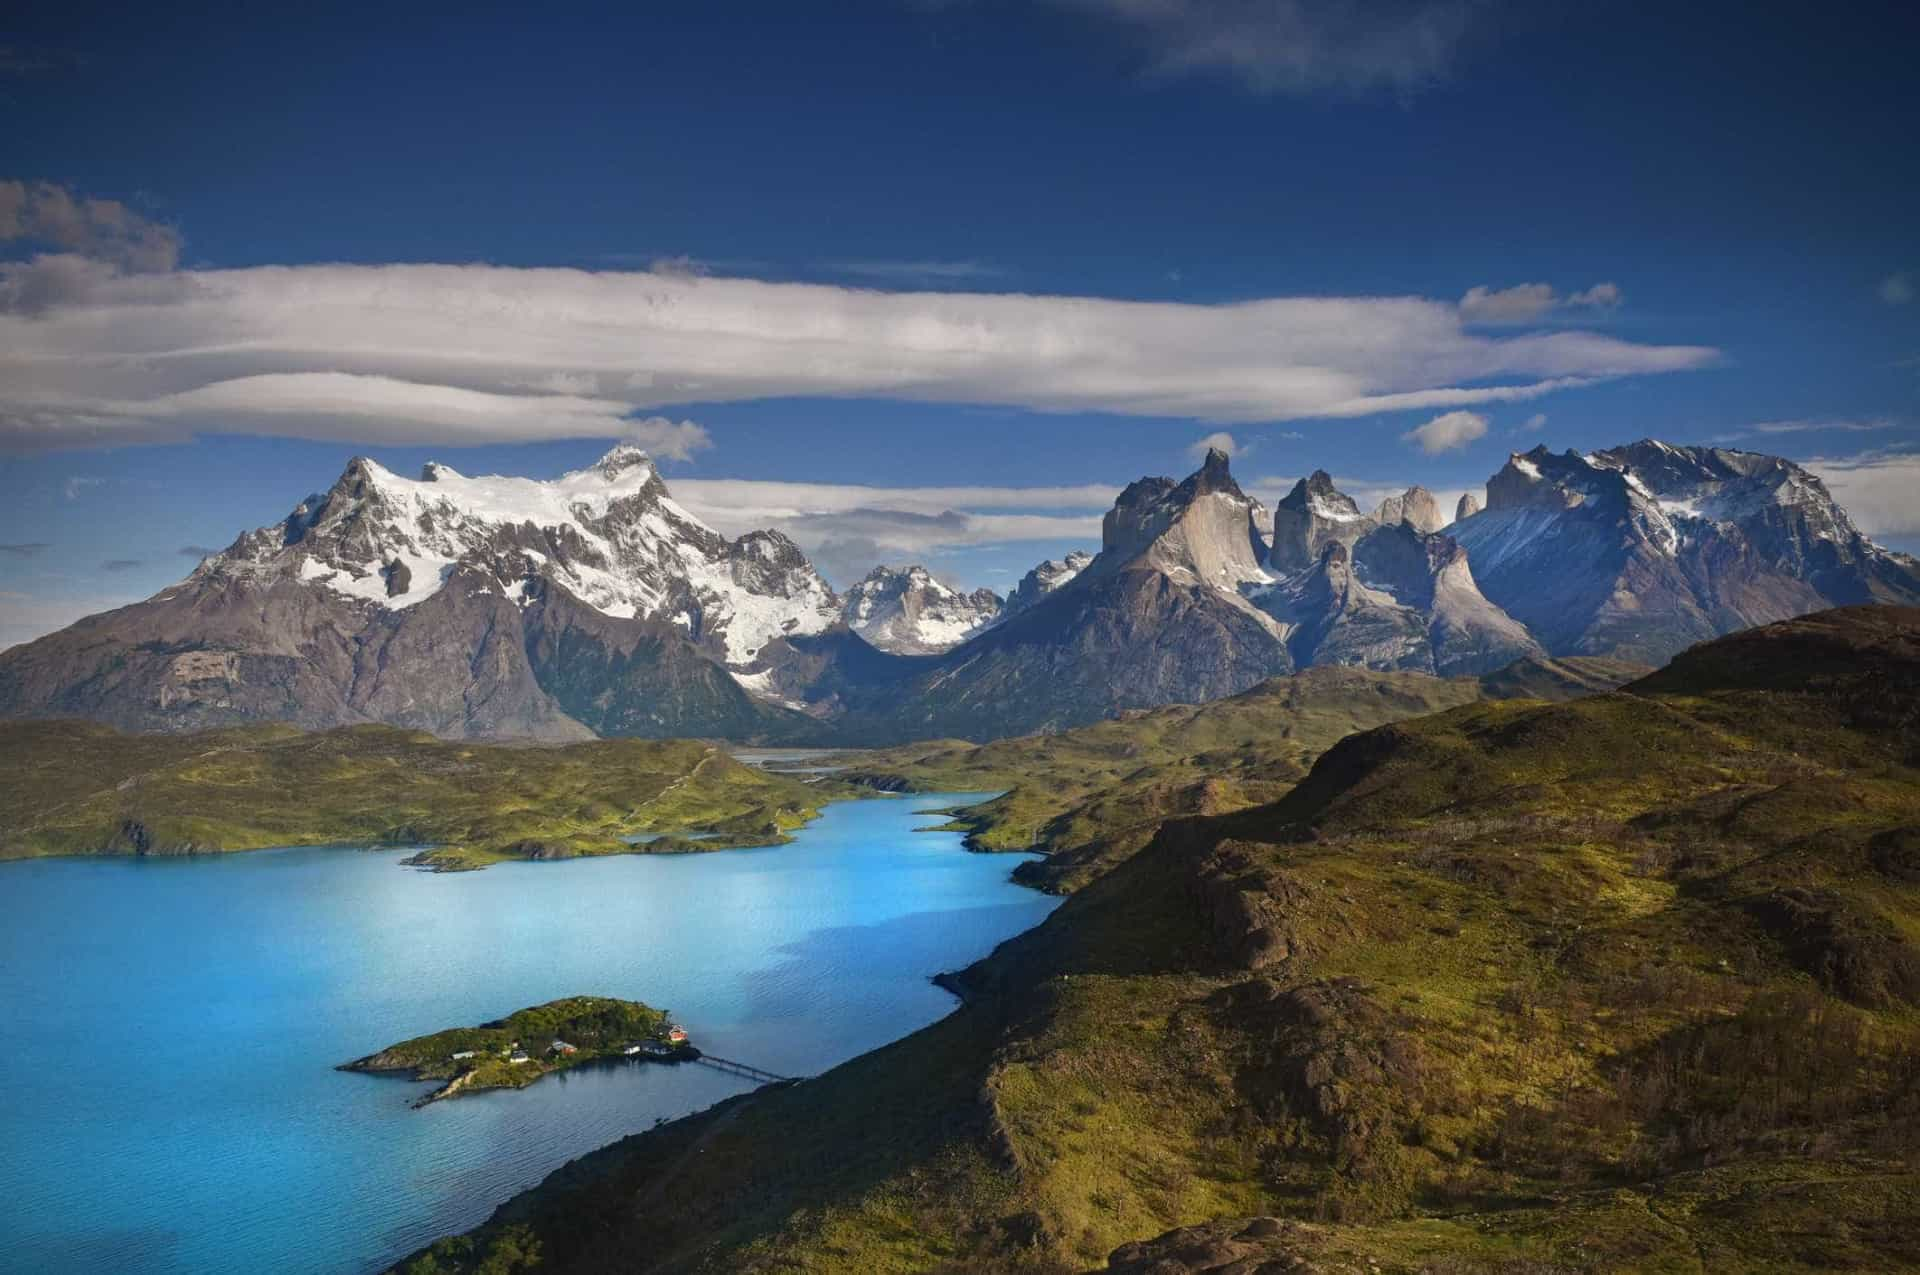 patagonia travel argentina lonely planet - 1000×664